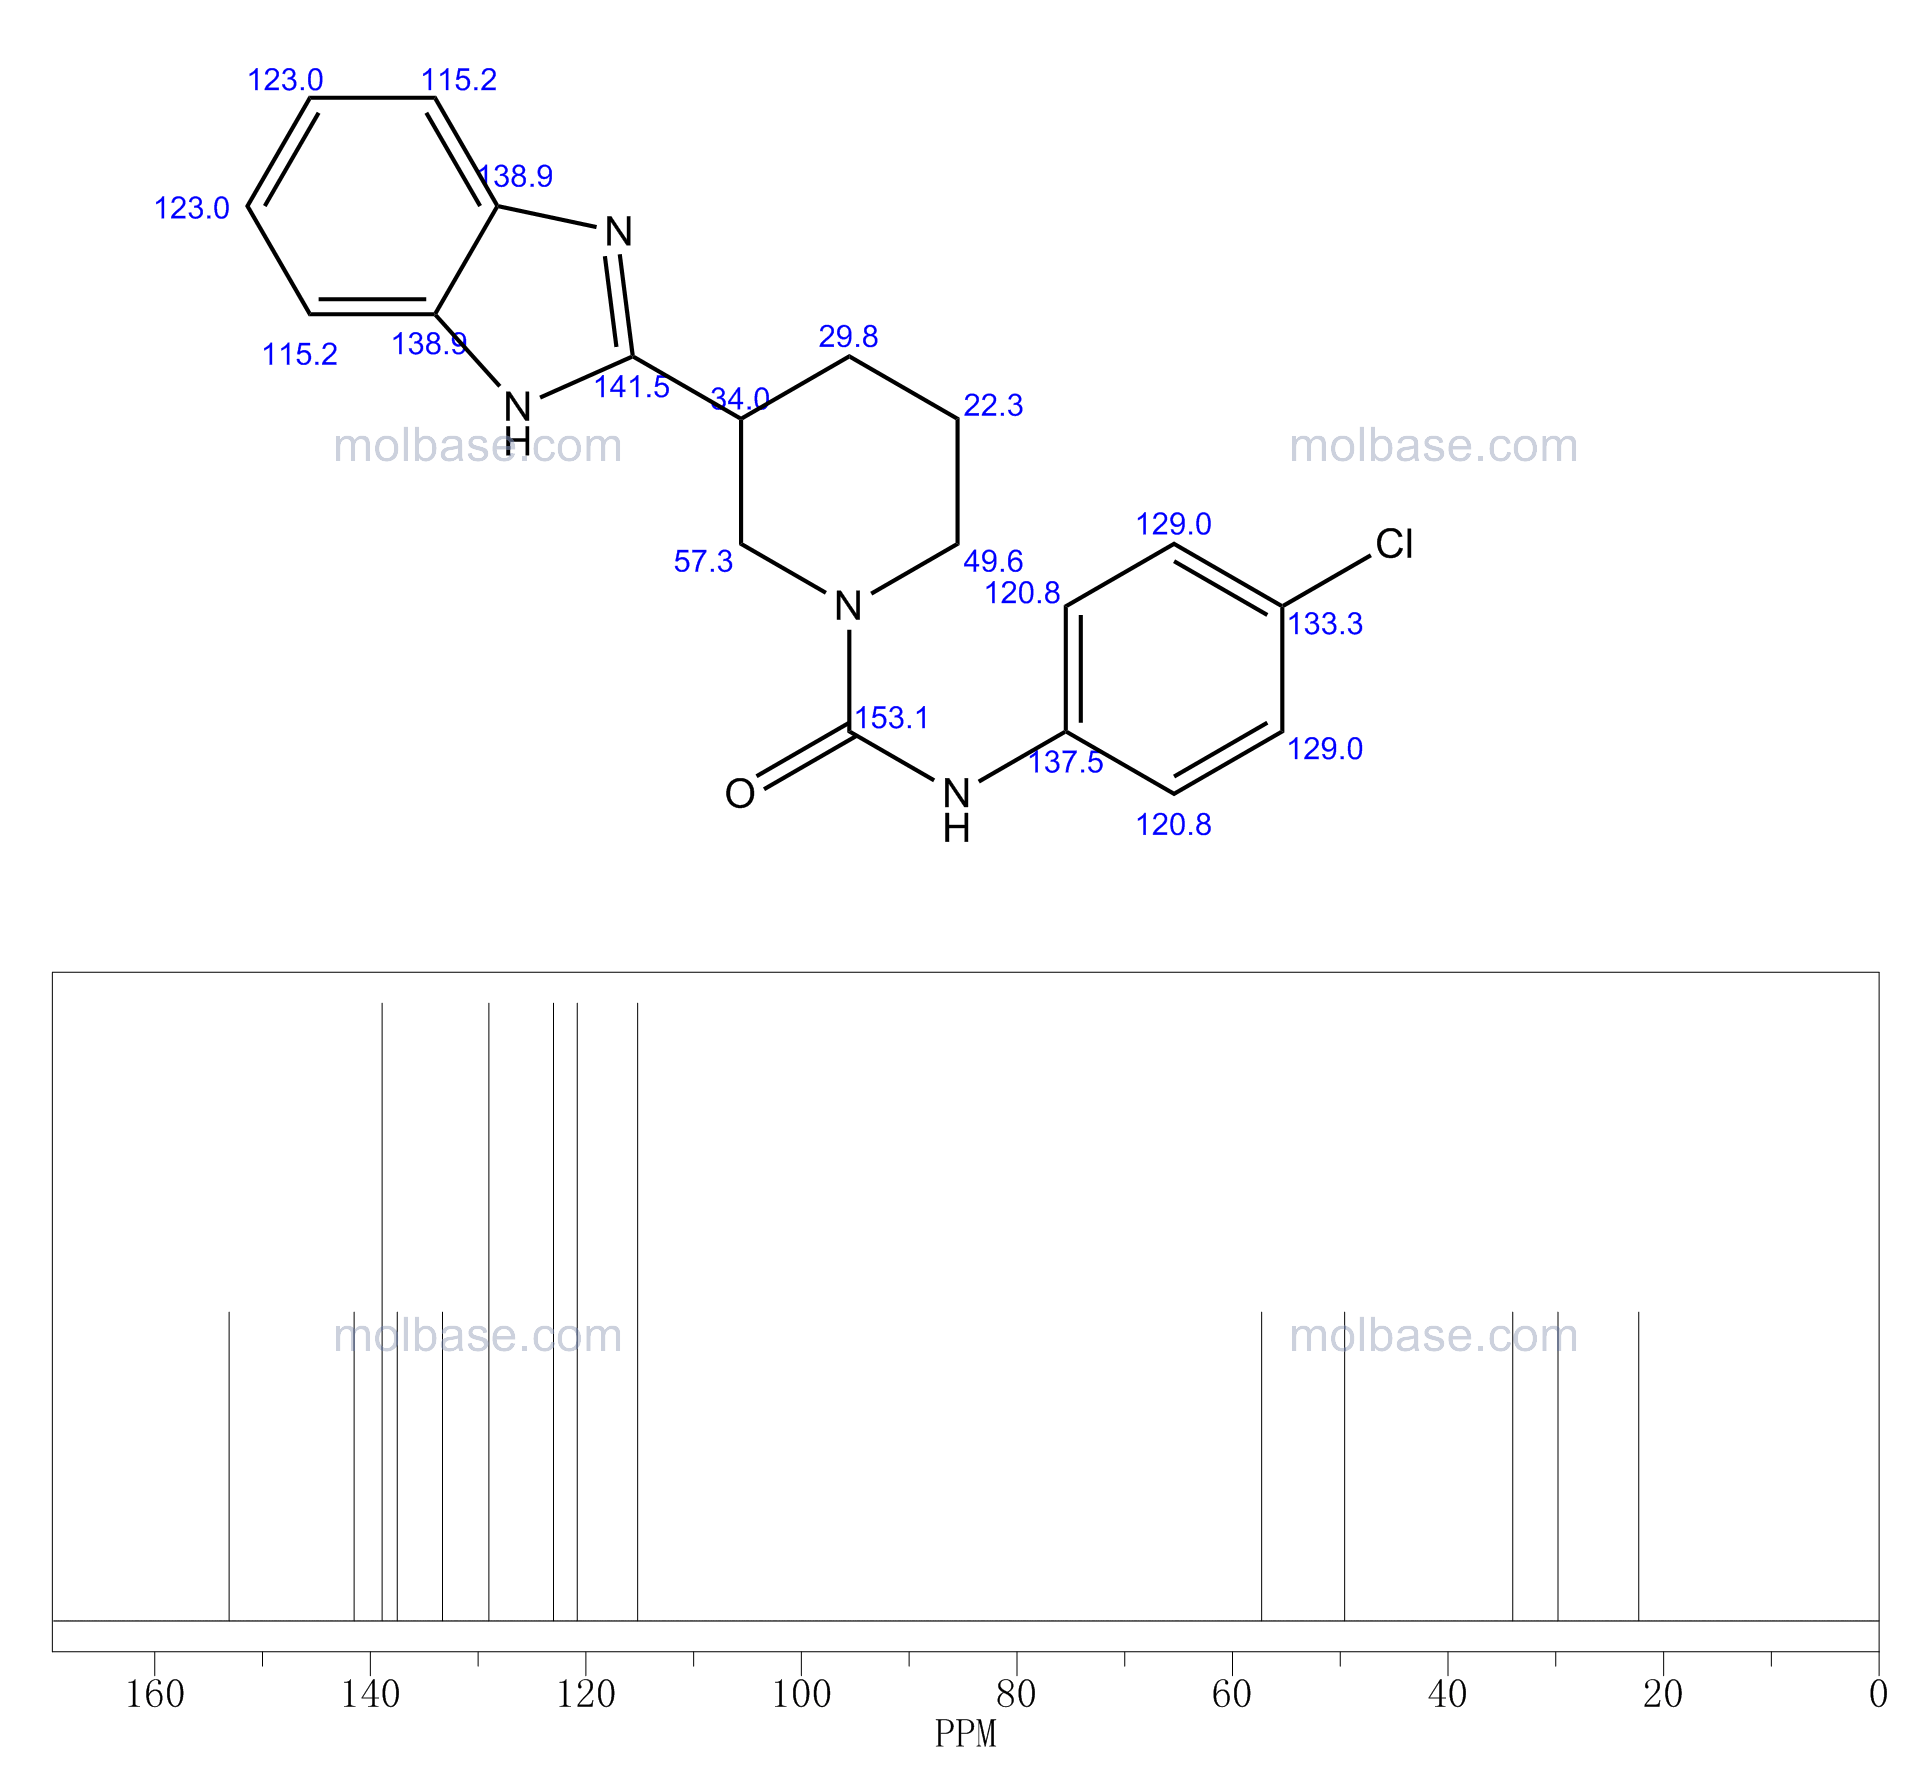 3-(1H-Benzimidazol-2-yl)-N-(4-chlorophenyl)-1-piperidinecarboxami de NMR spectra analysis, Chemical CAS NO. 606089-96-7 NMR spectral analysis, 3-(1H-Benzimidazol-2-yl)-N-(4-chlorophenyl)-1-piperidinecarboxami de C-NMR spectrum